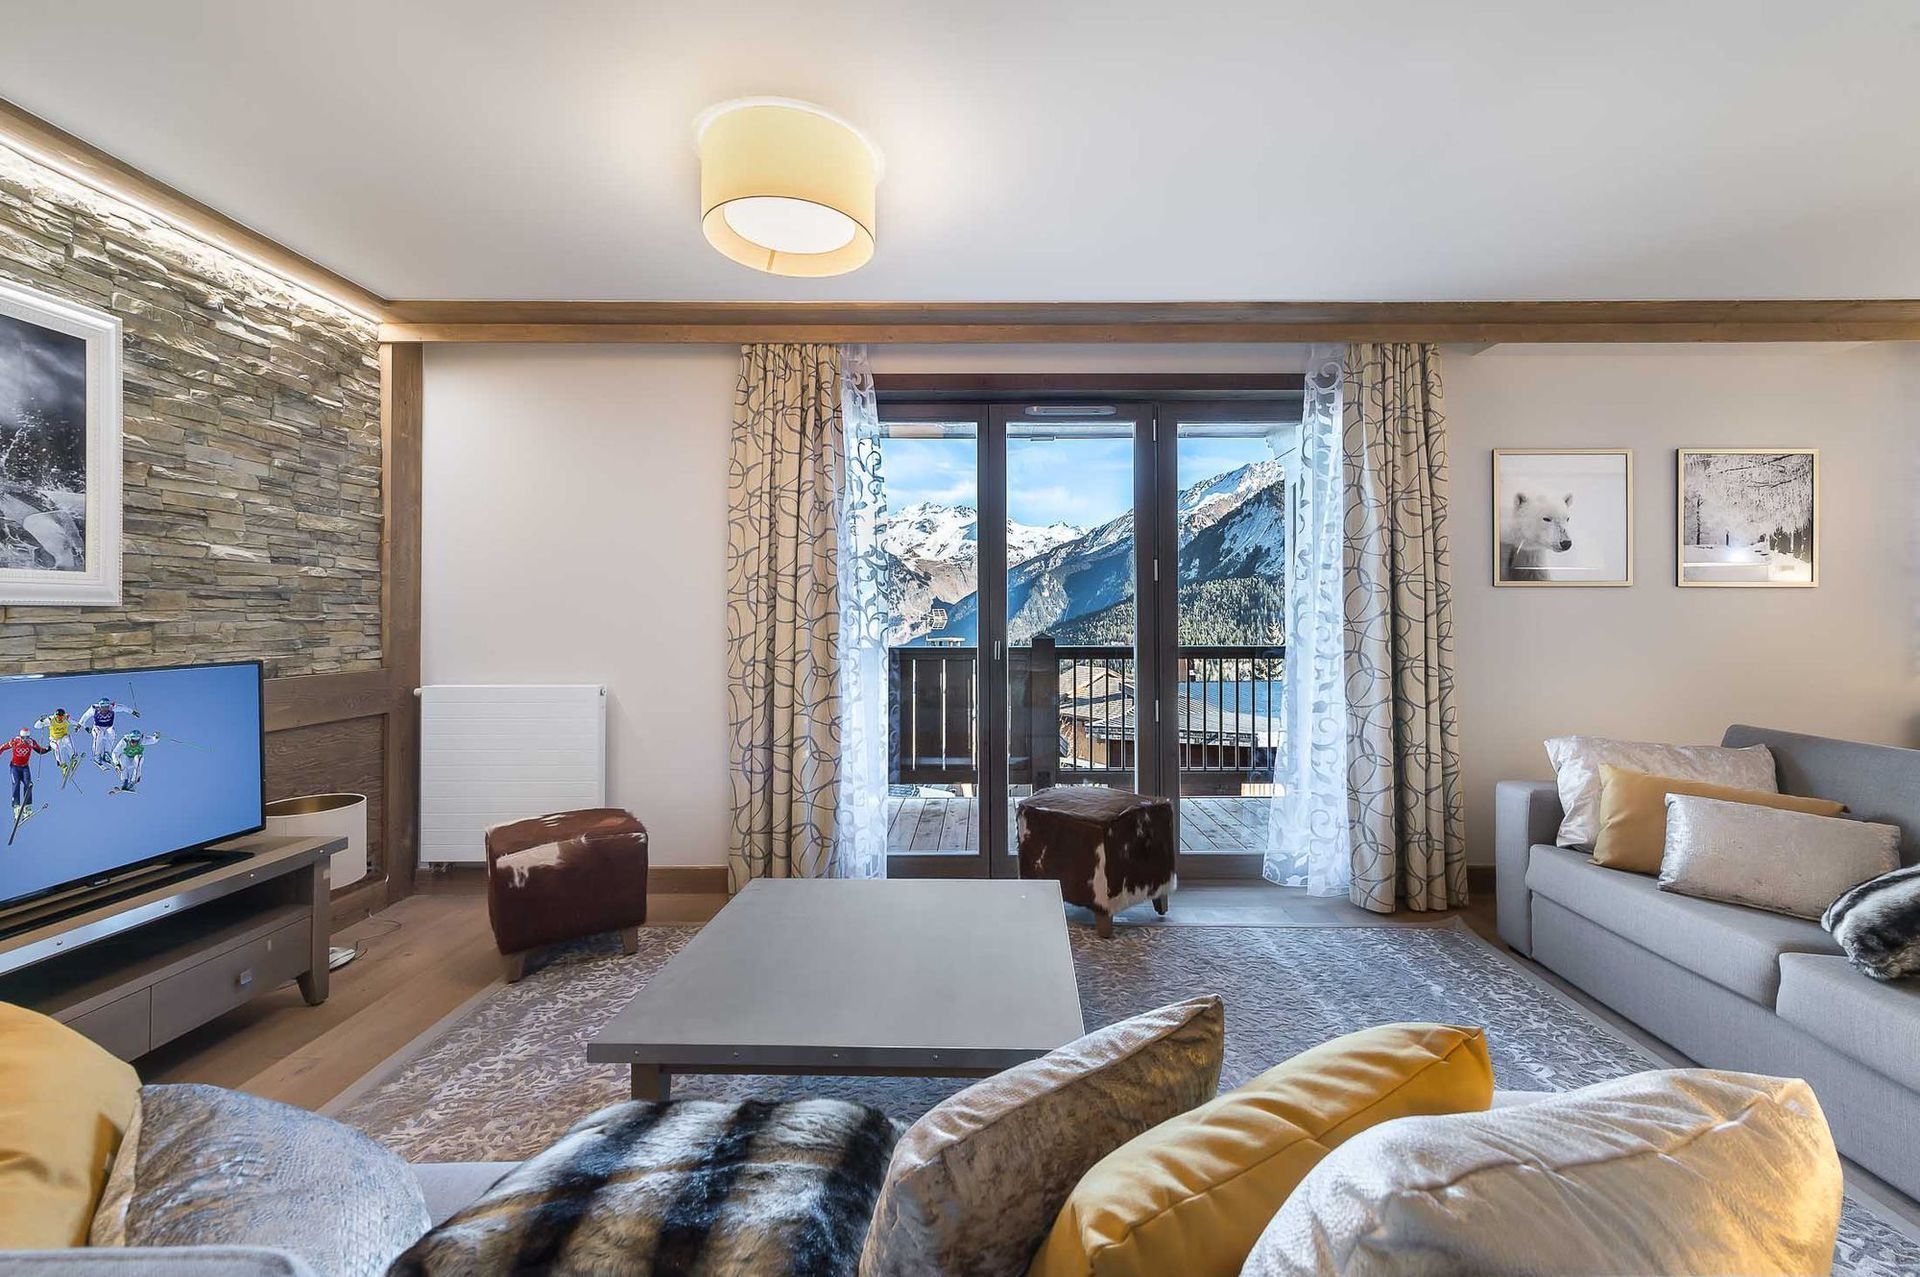 4 rooms 8 people / CARRE BLANC 131 (mountain of dream)